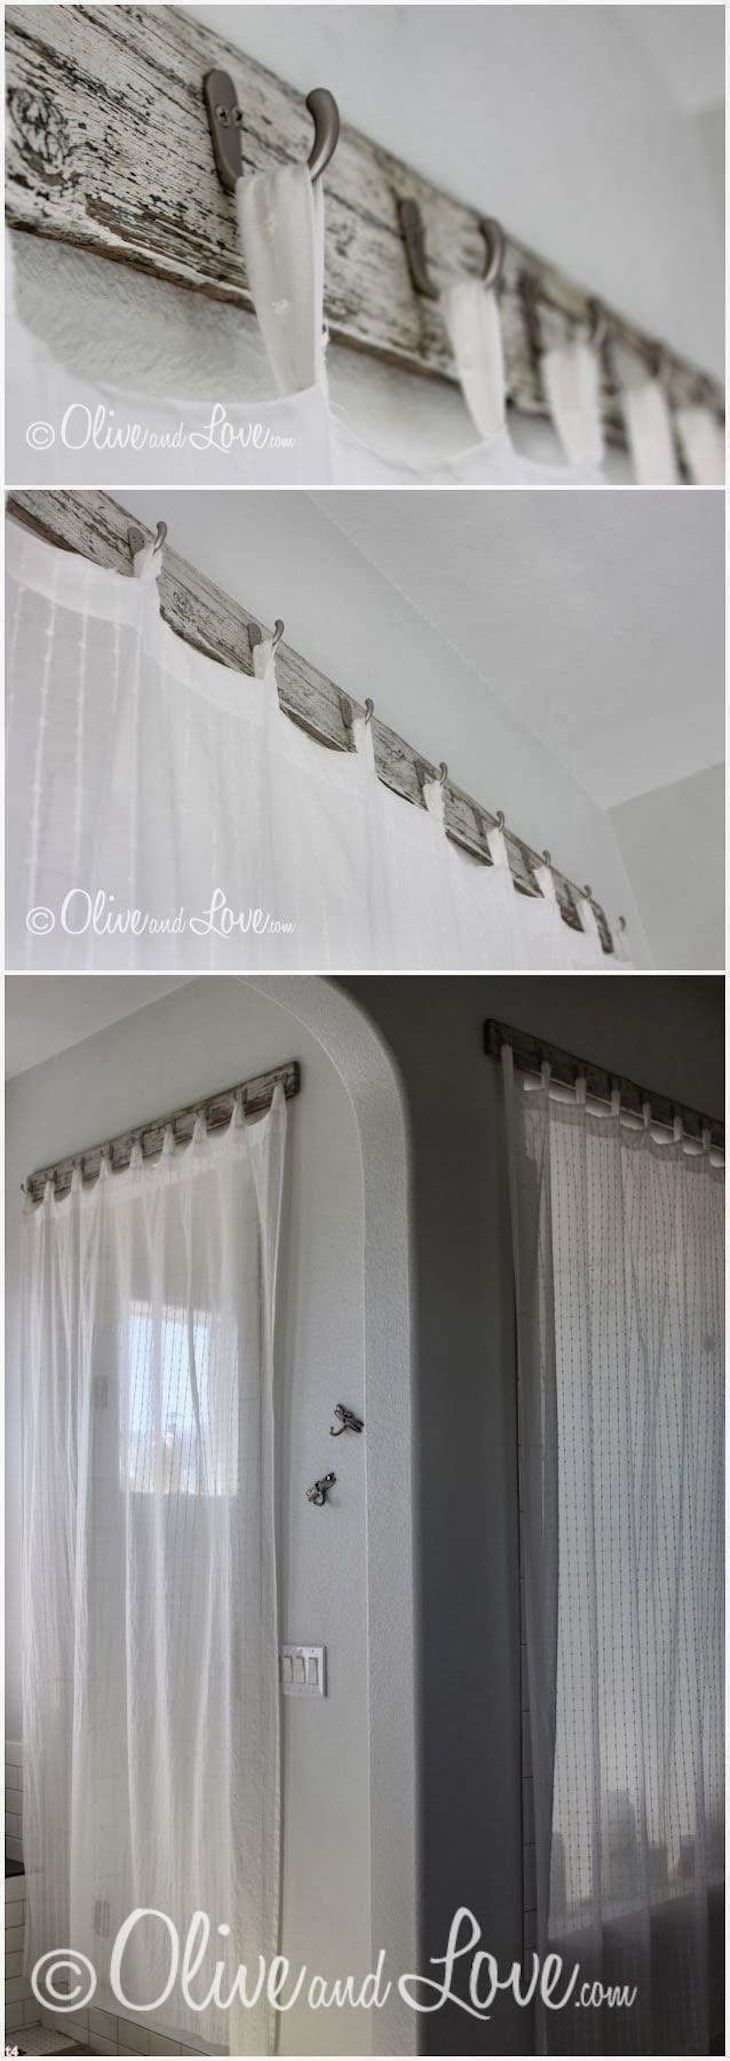 Window Curtain Design Ideas best 20 living room curtains ideas on pinterest window curtains window treatments living room curtains and curtain ideas Top 10 Decorative Diy Curtain Rods Design Ideas